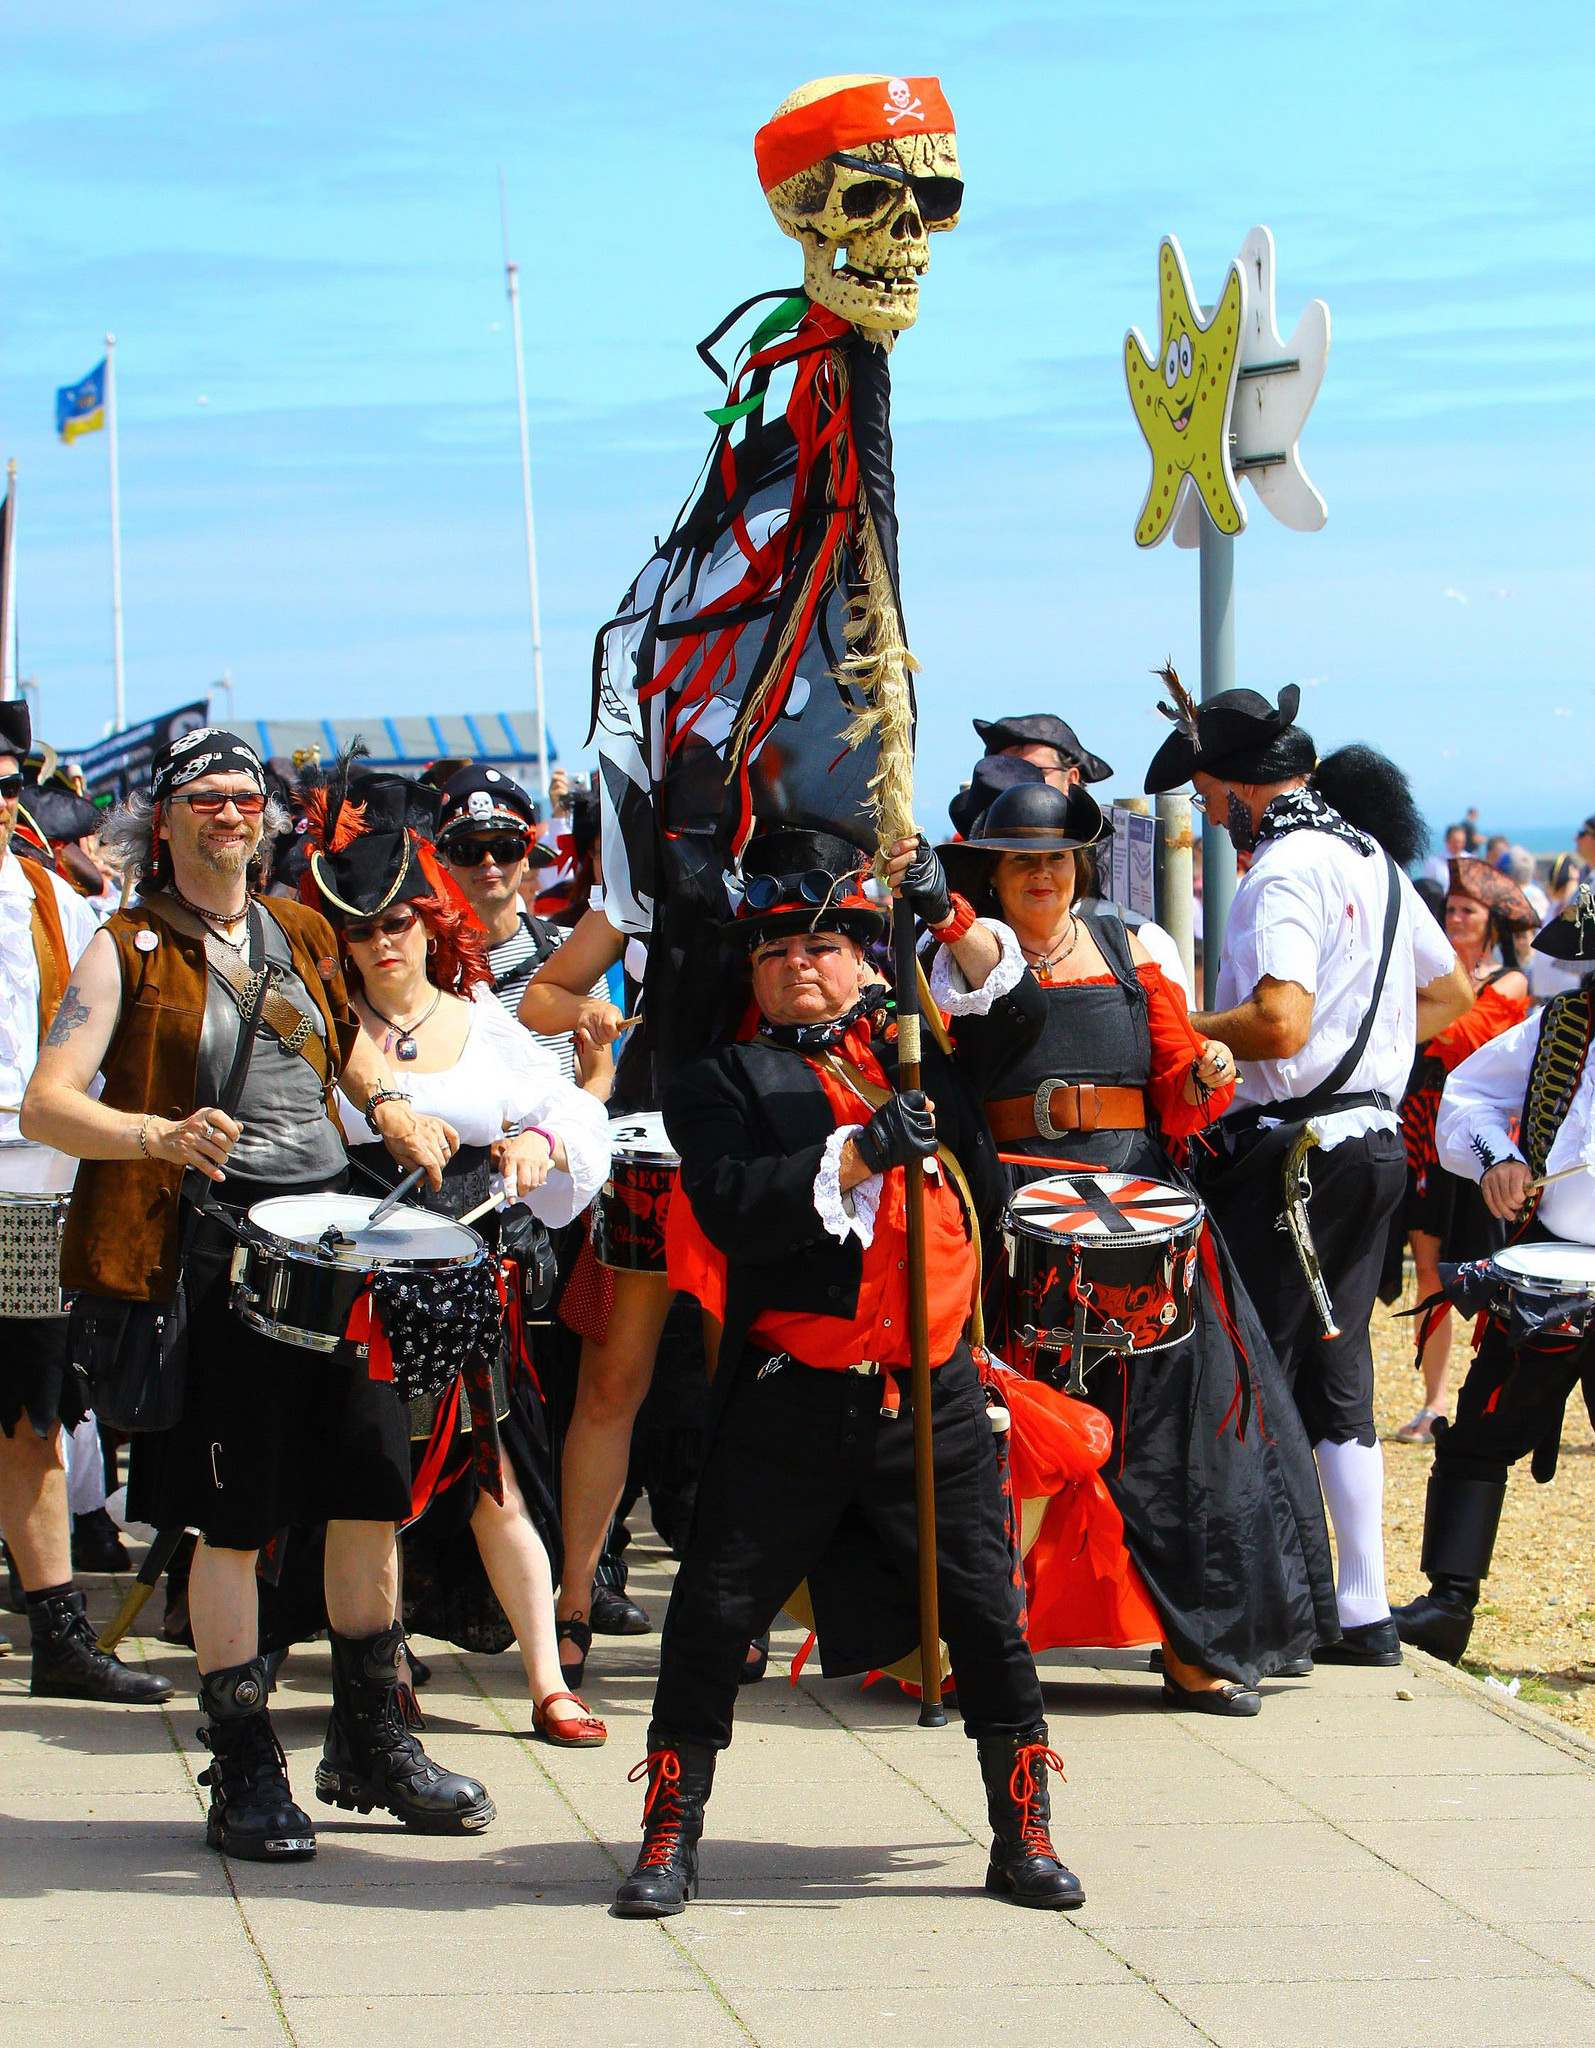 pirate 20166 Hastings Pirate Day 2016